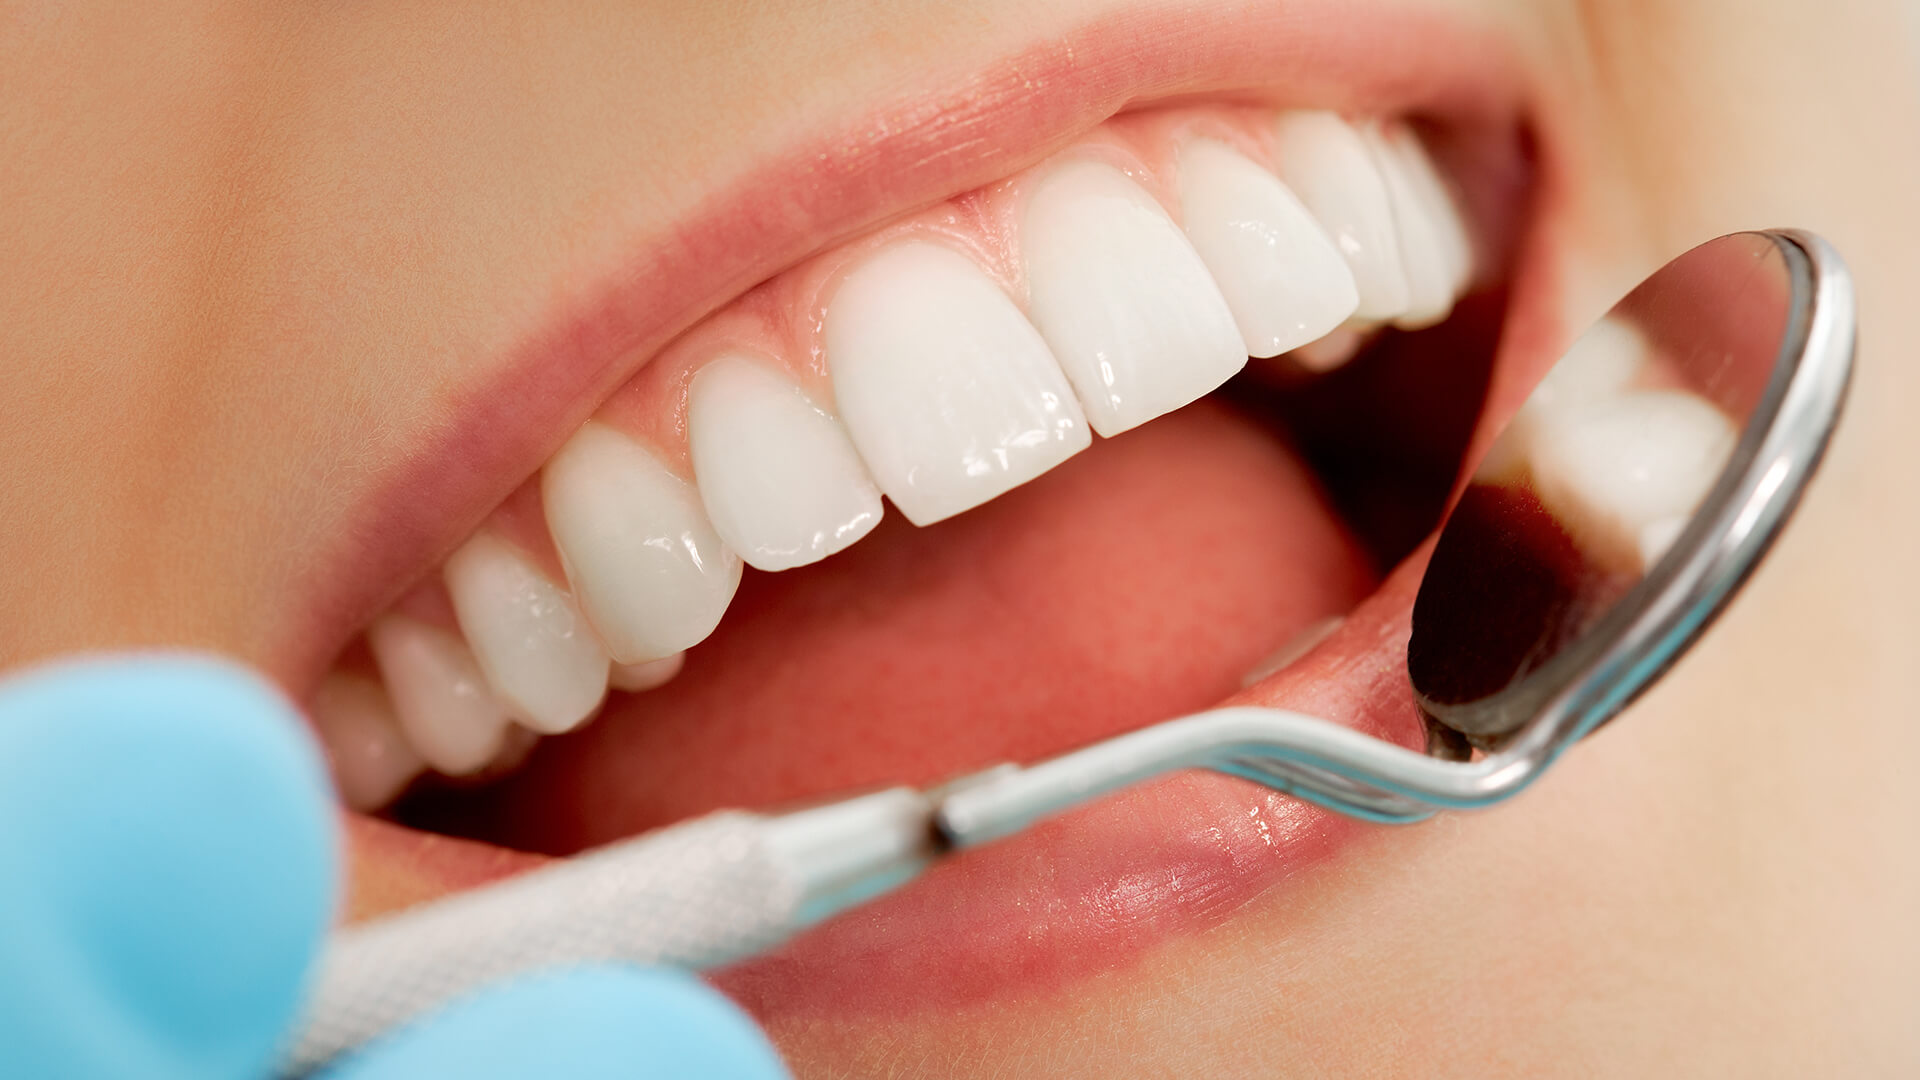 10 Ways to Keep Acid Reflux From Damaging Your Teeth